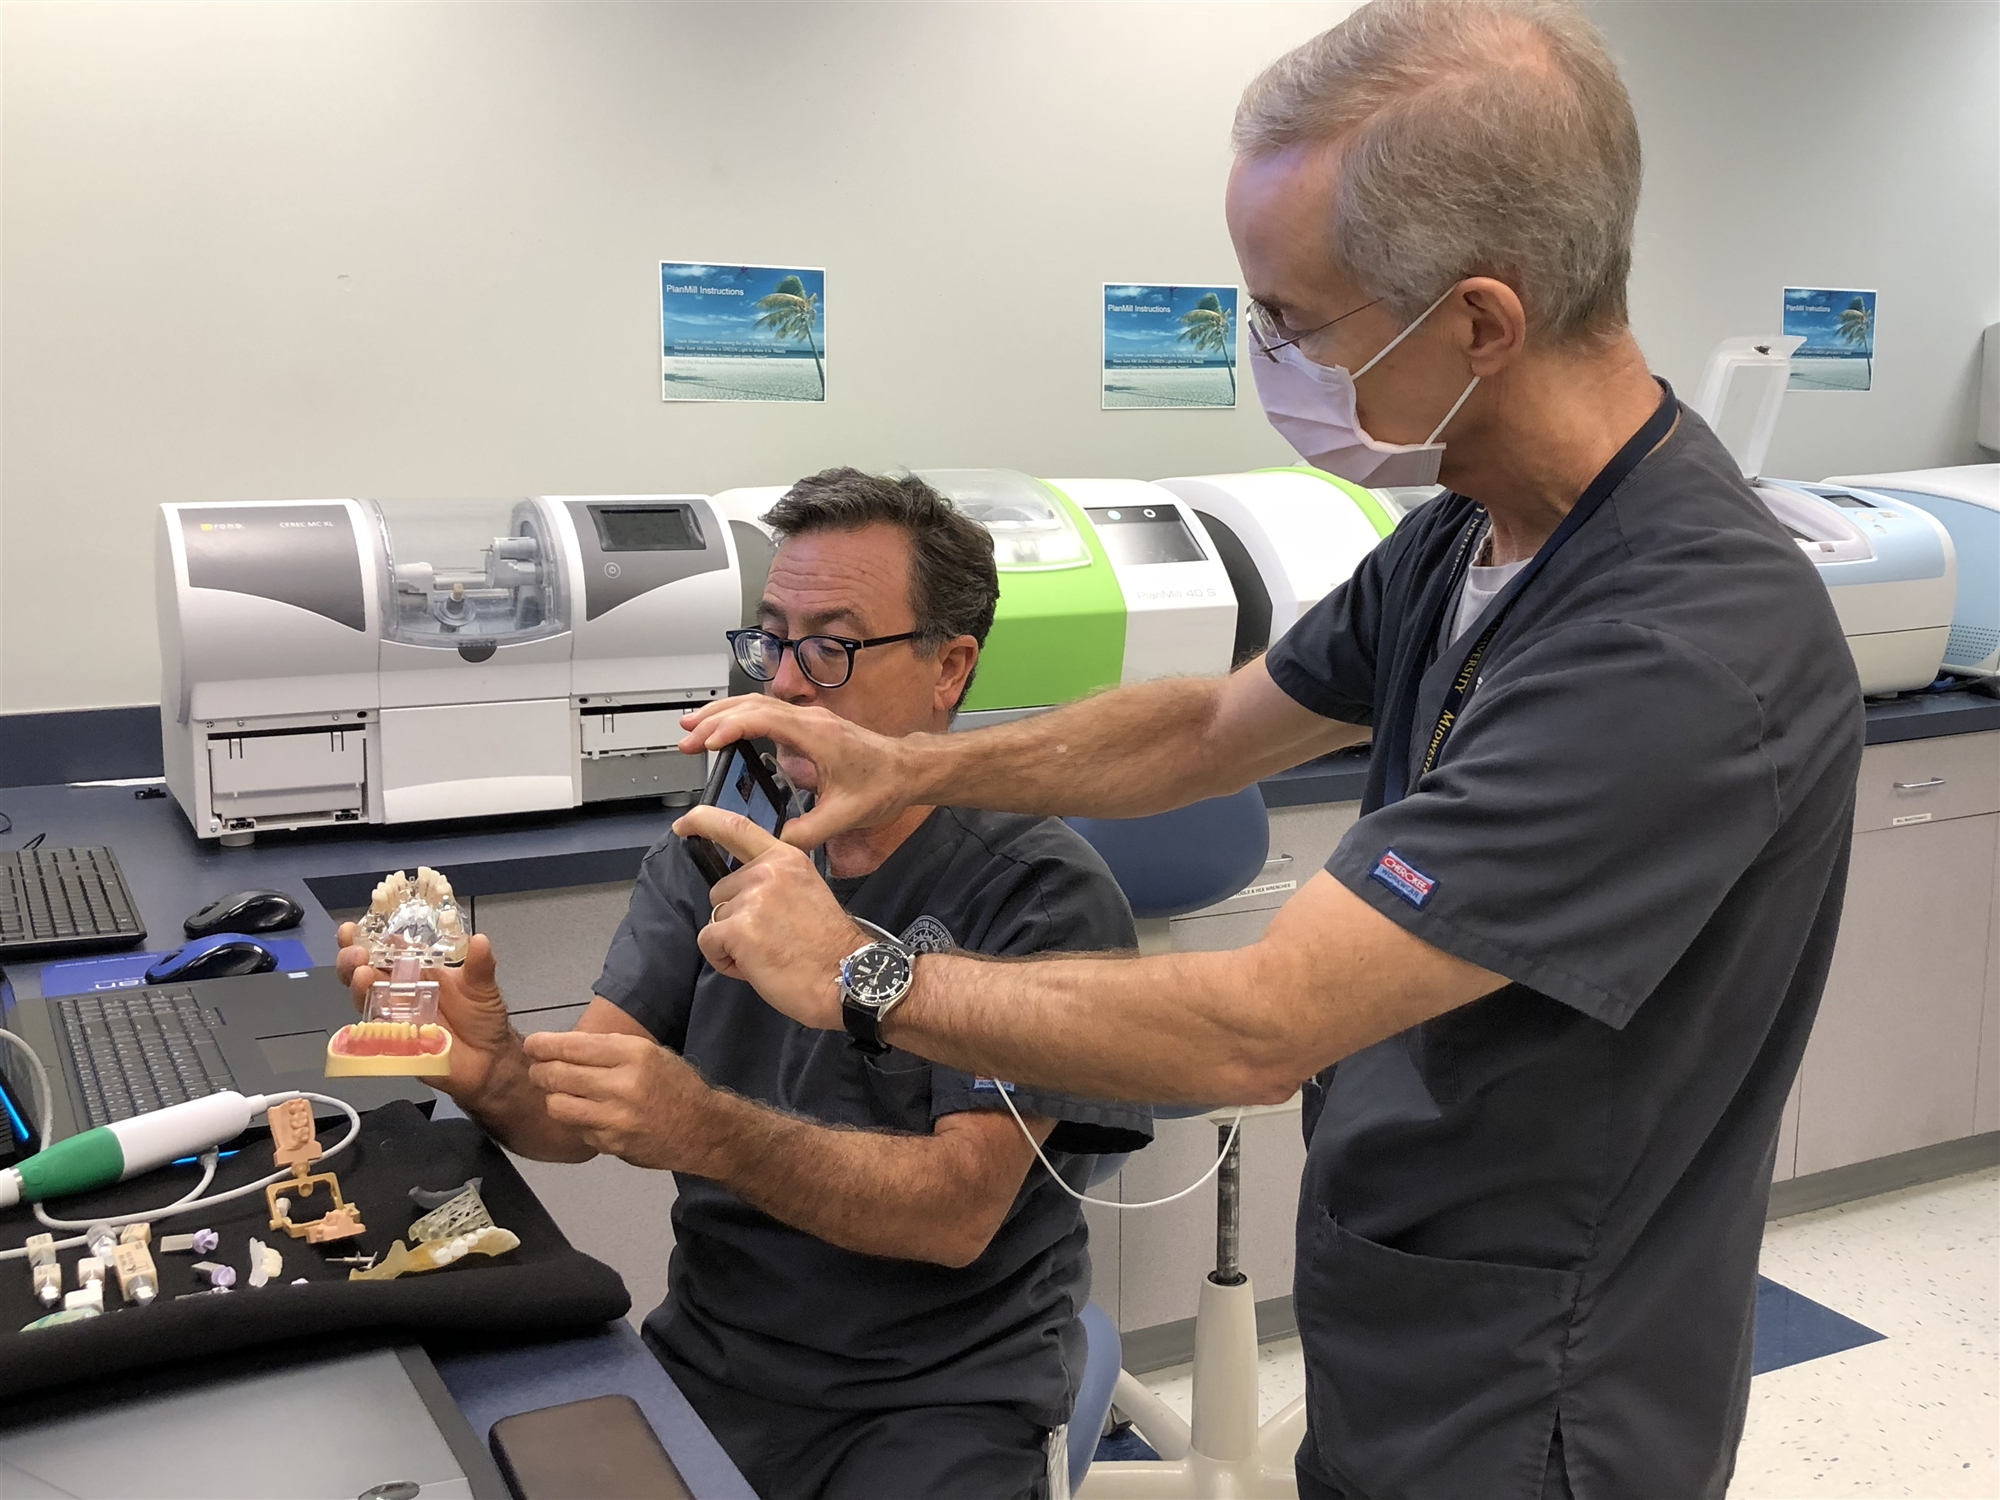 Thomas McDaniel, D.M.D., Professor, takes video of Robert Kramer, D.M.D., Director of PreClinical Faculty, as they present an online workshop at the 2020 Health Careers Institute for High School Students. (Photo courtesy of Midwestern University)